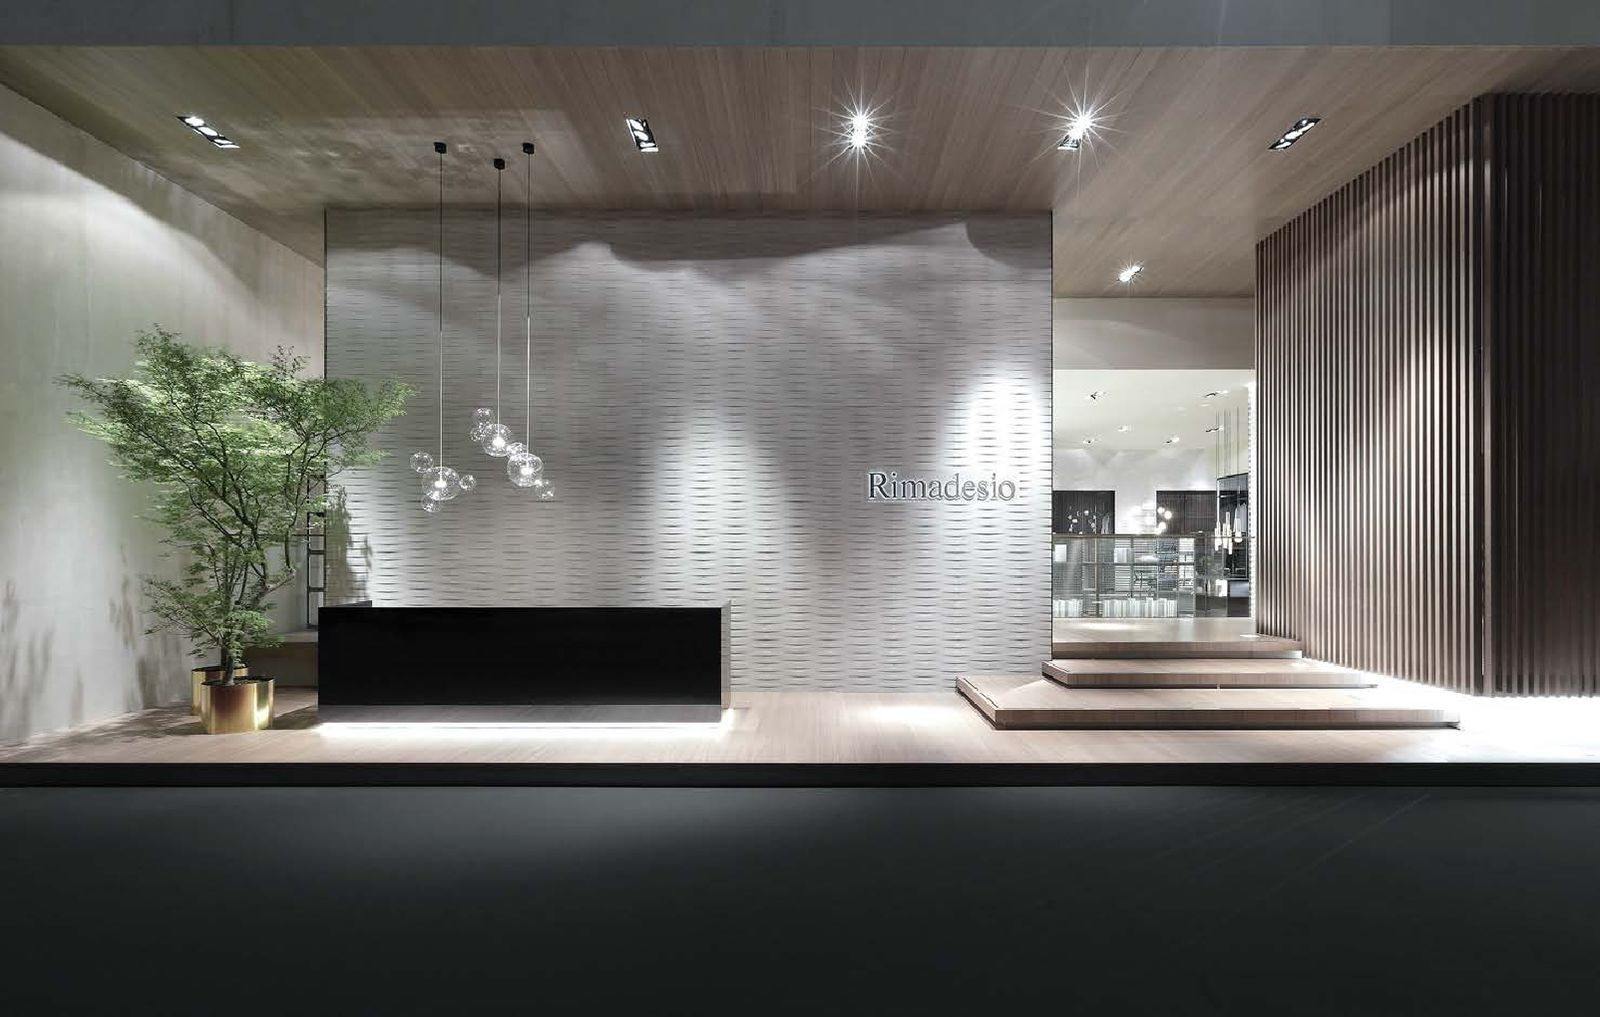 Exhibition Stand Design Pdf : Rimadesio show stand at the milan furniture show pdf to